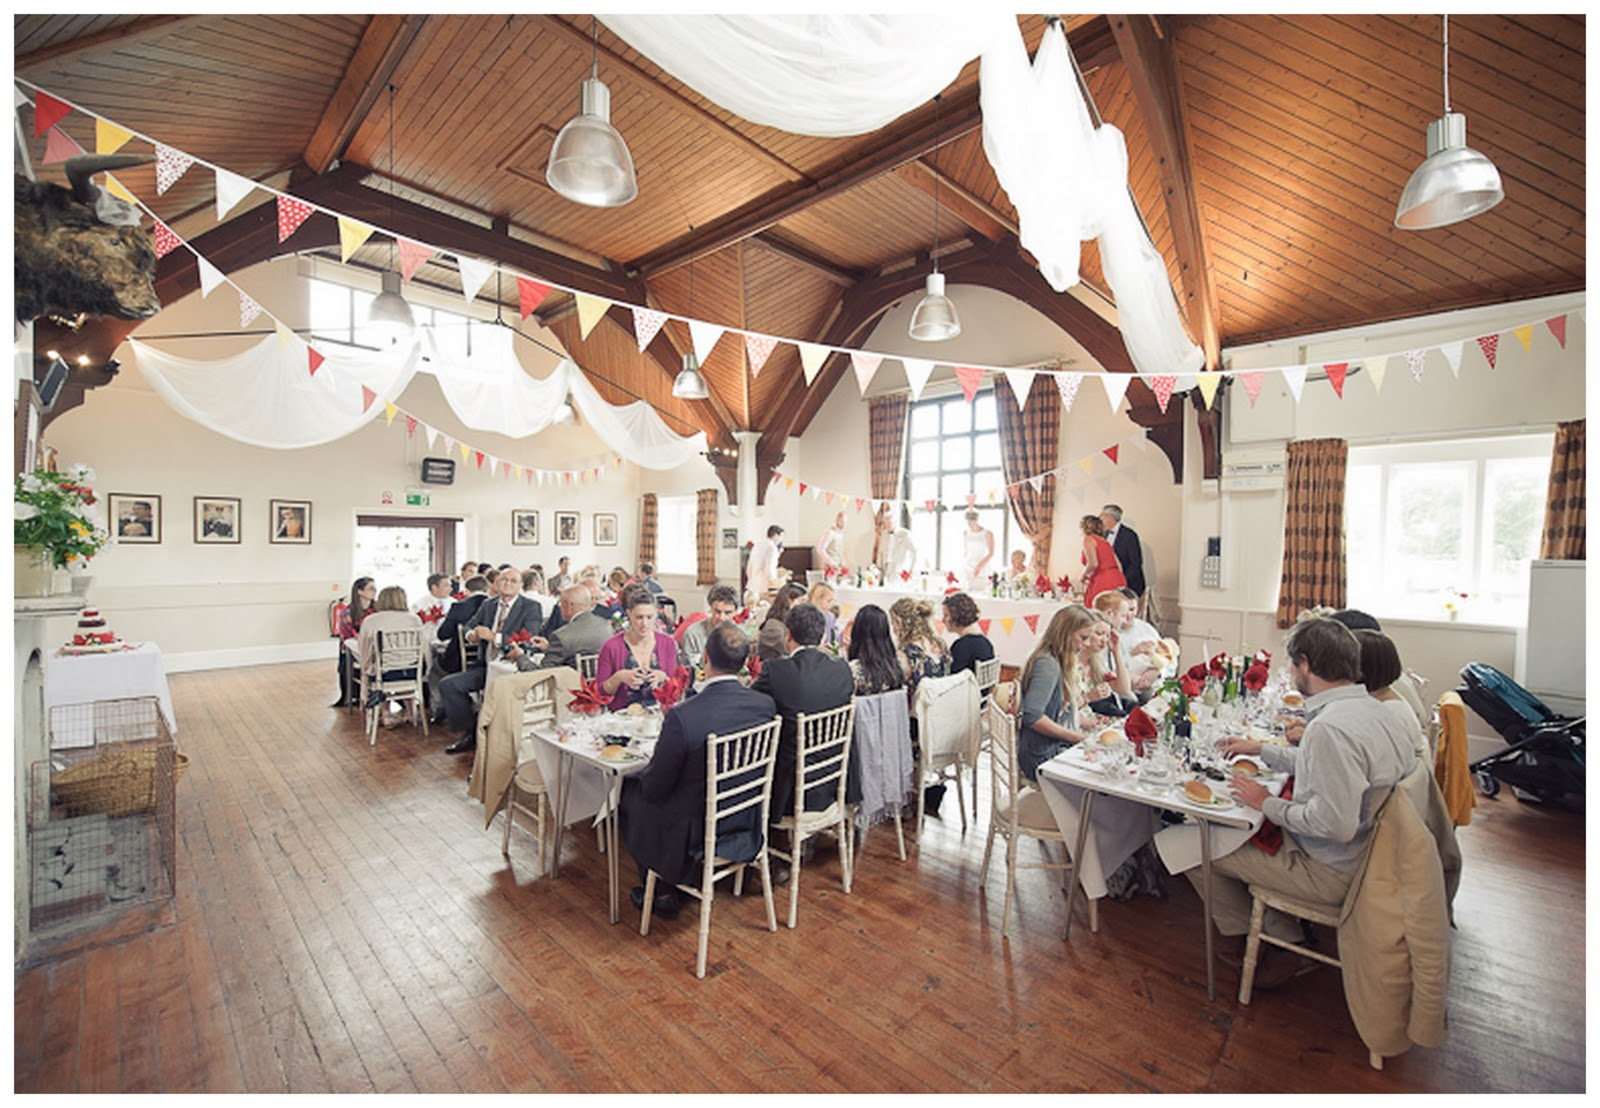 Home Design Image Ideas Village Hall Wedding Ideas